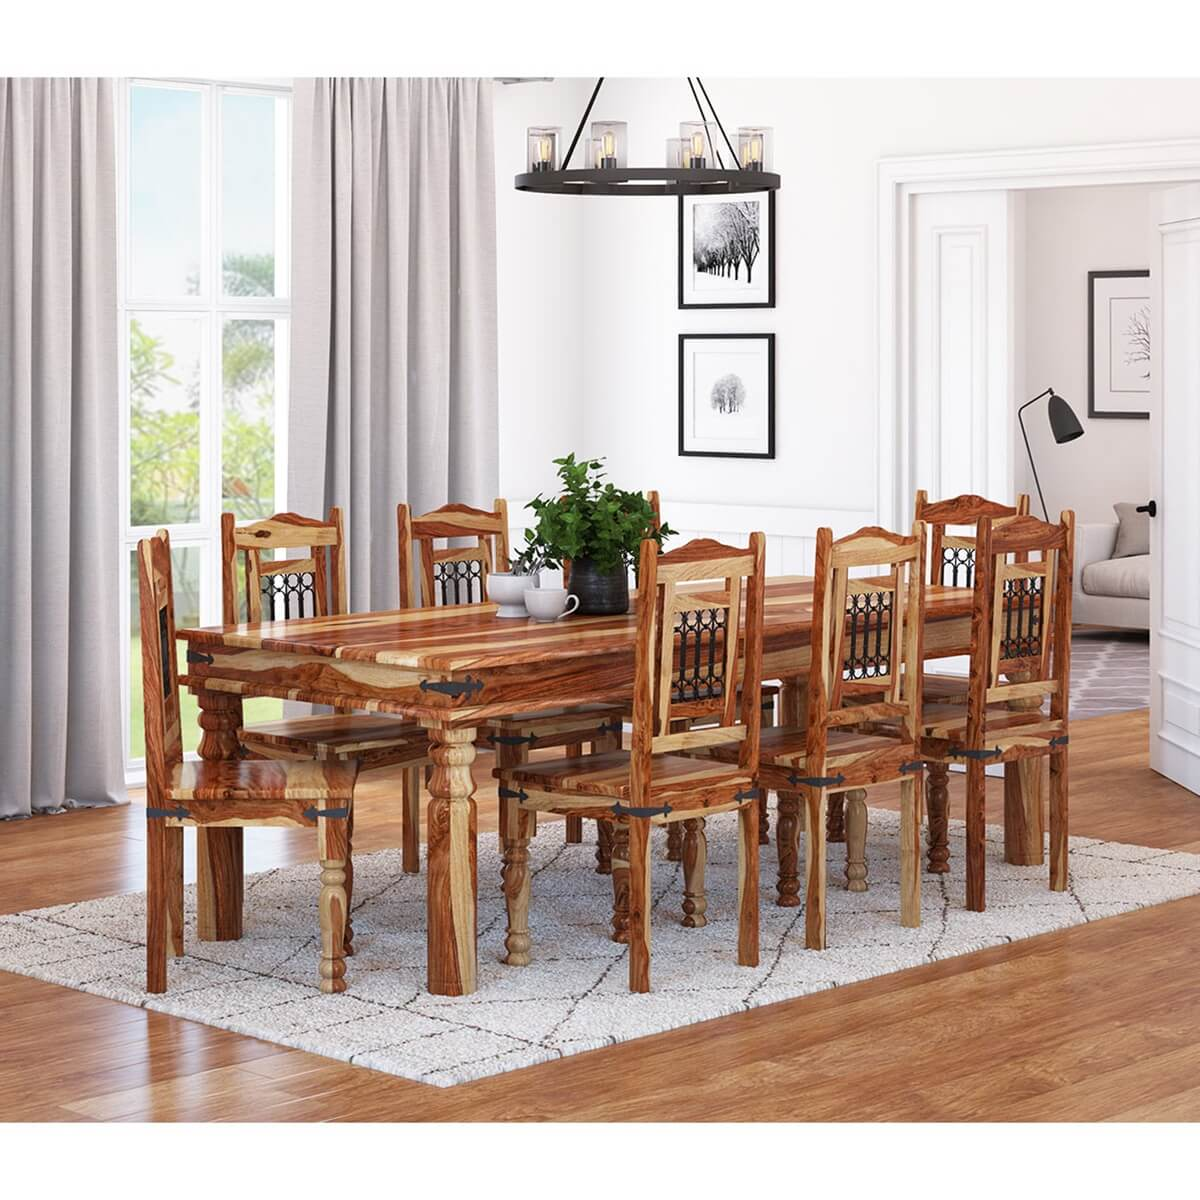 Dallas classic solid wood rustic dining room table and for Classic dining tables and chairs